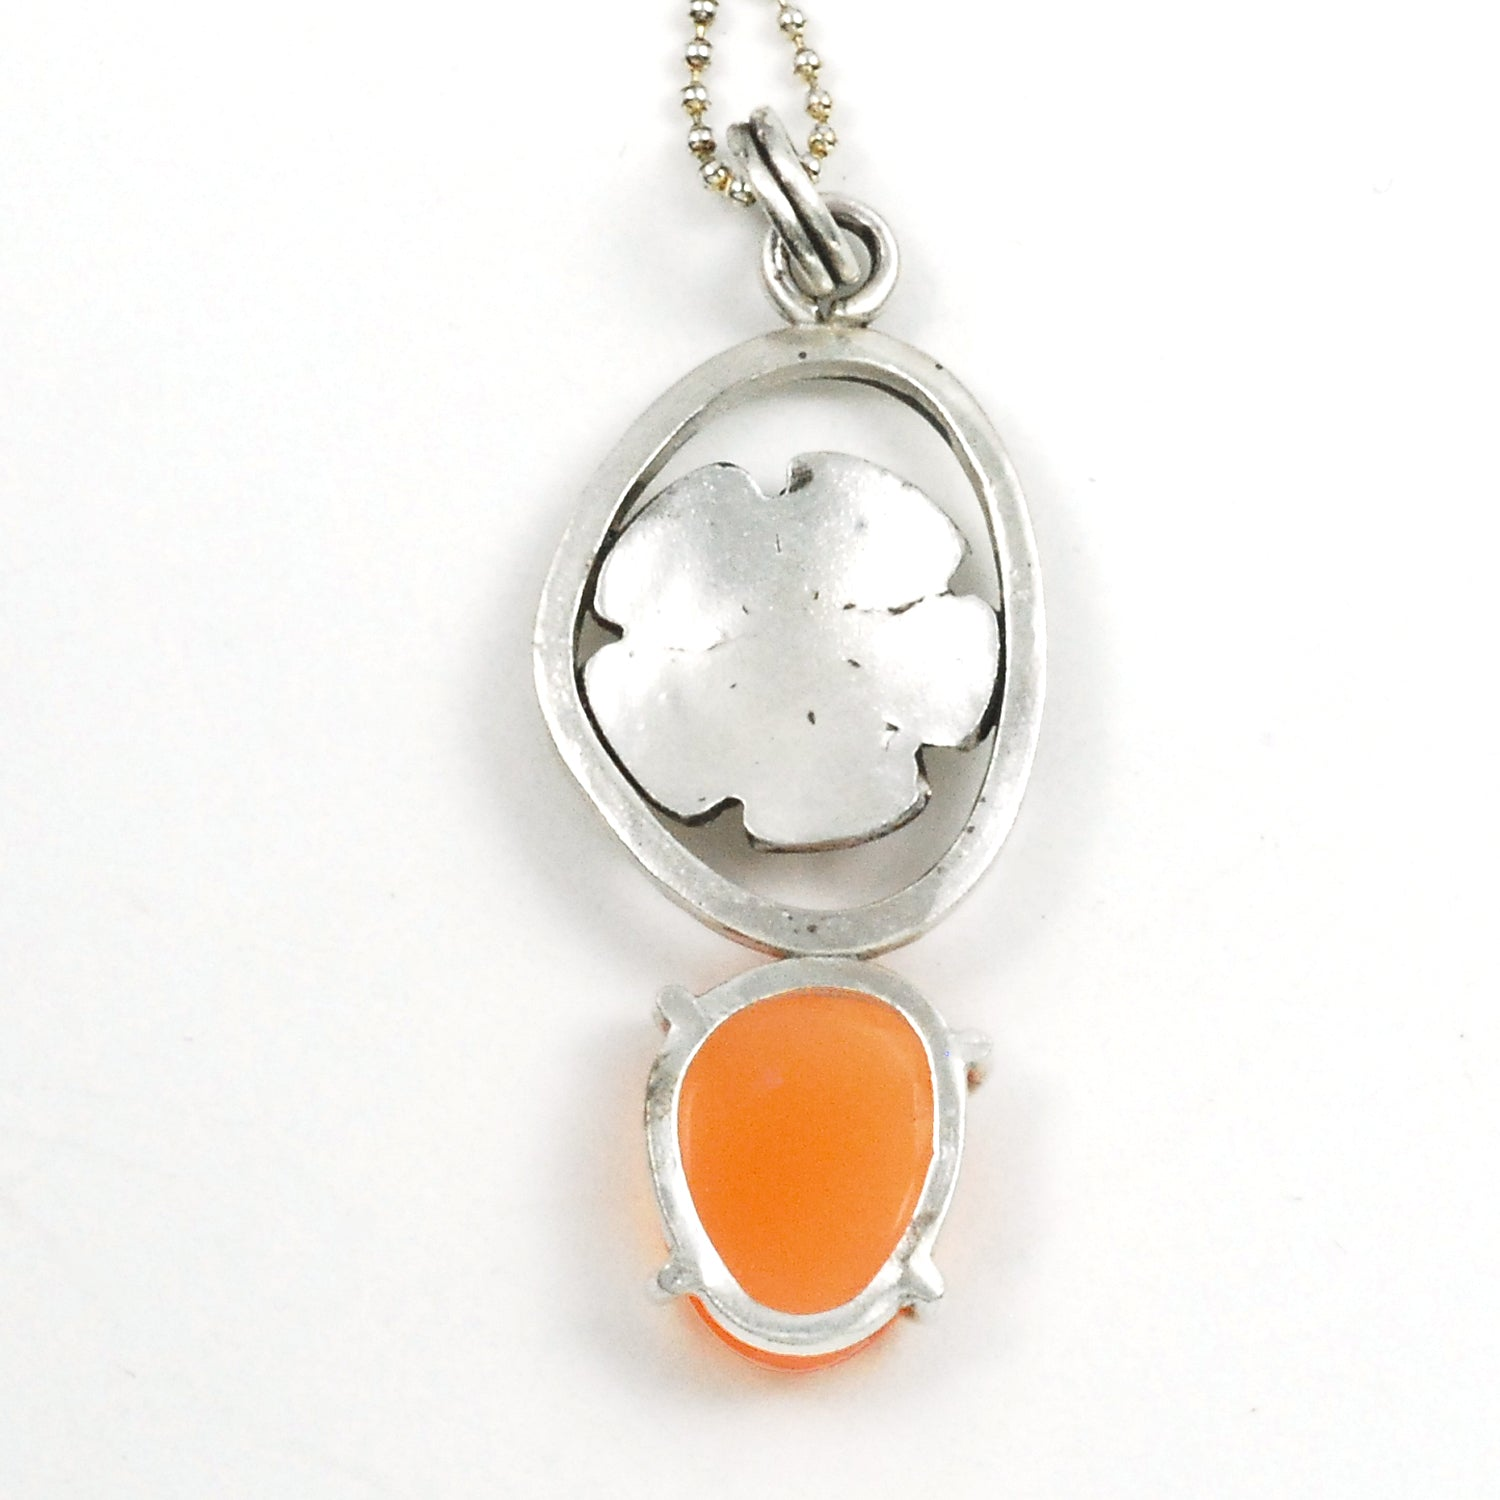 Orange Mallow Pendant